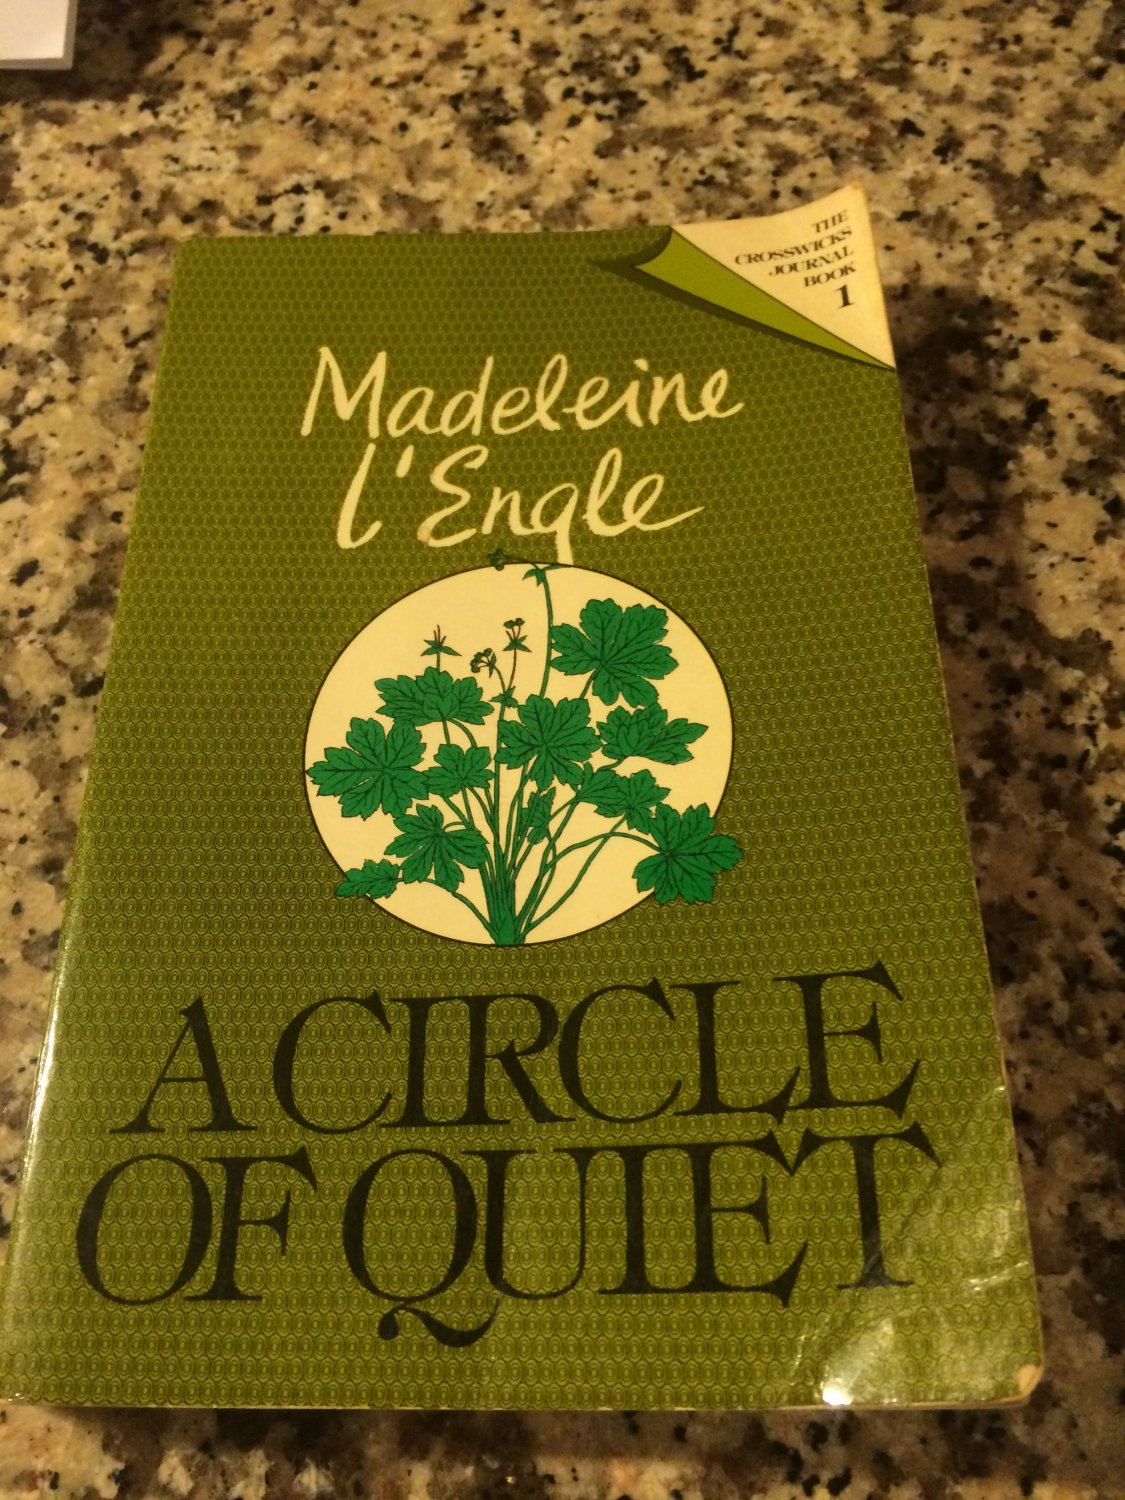 A Circle Of Quiet - The Crosswicks Journal - Book 1 - 1972 by Madeleine L'engle